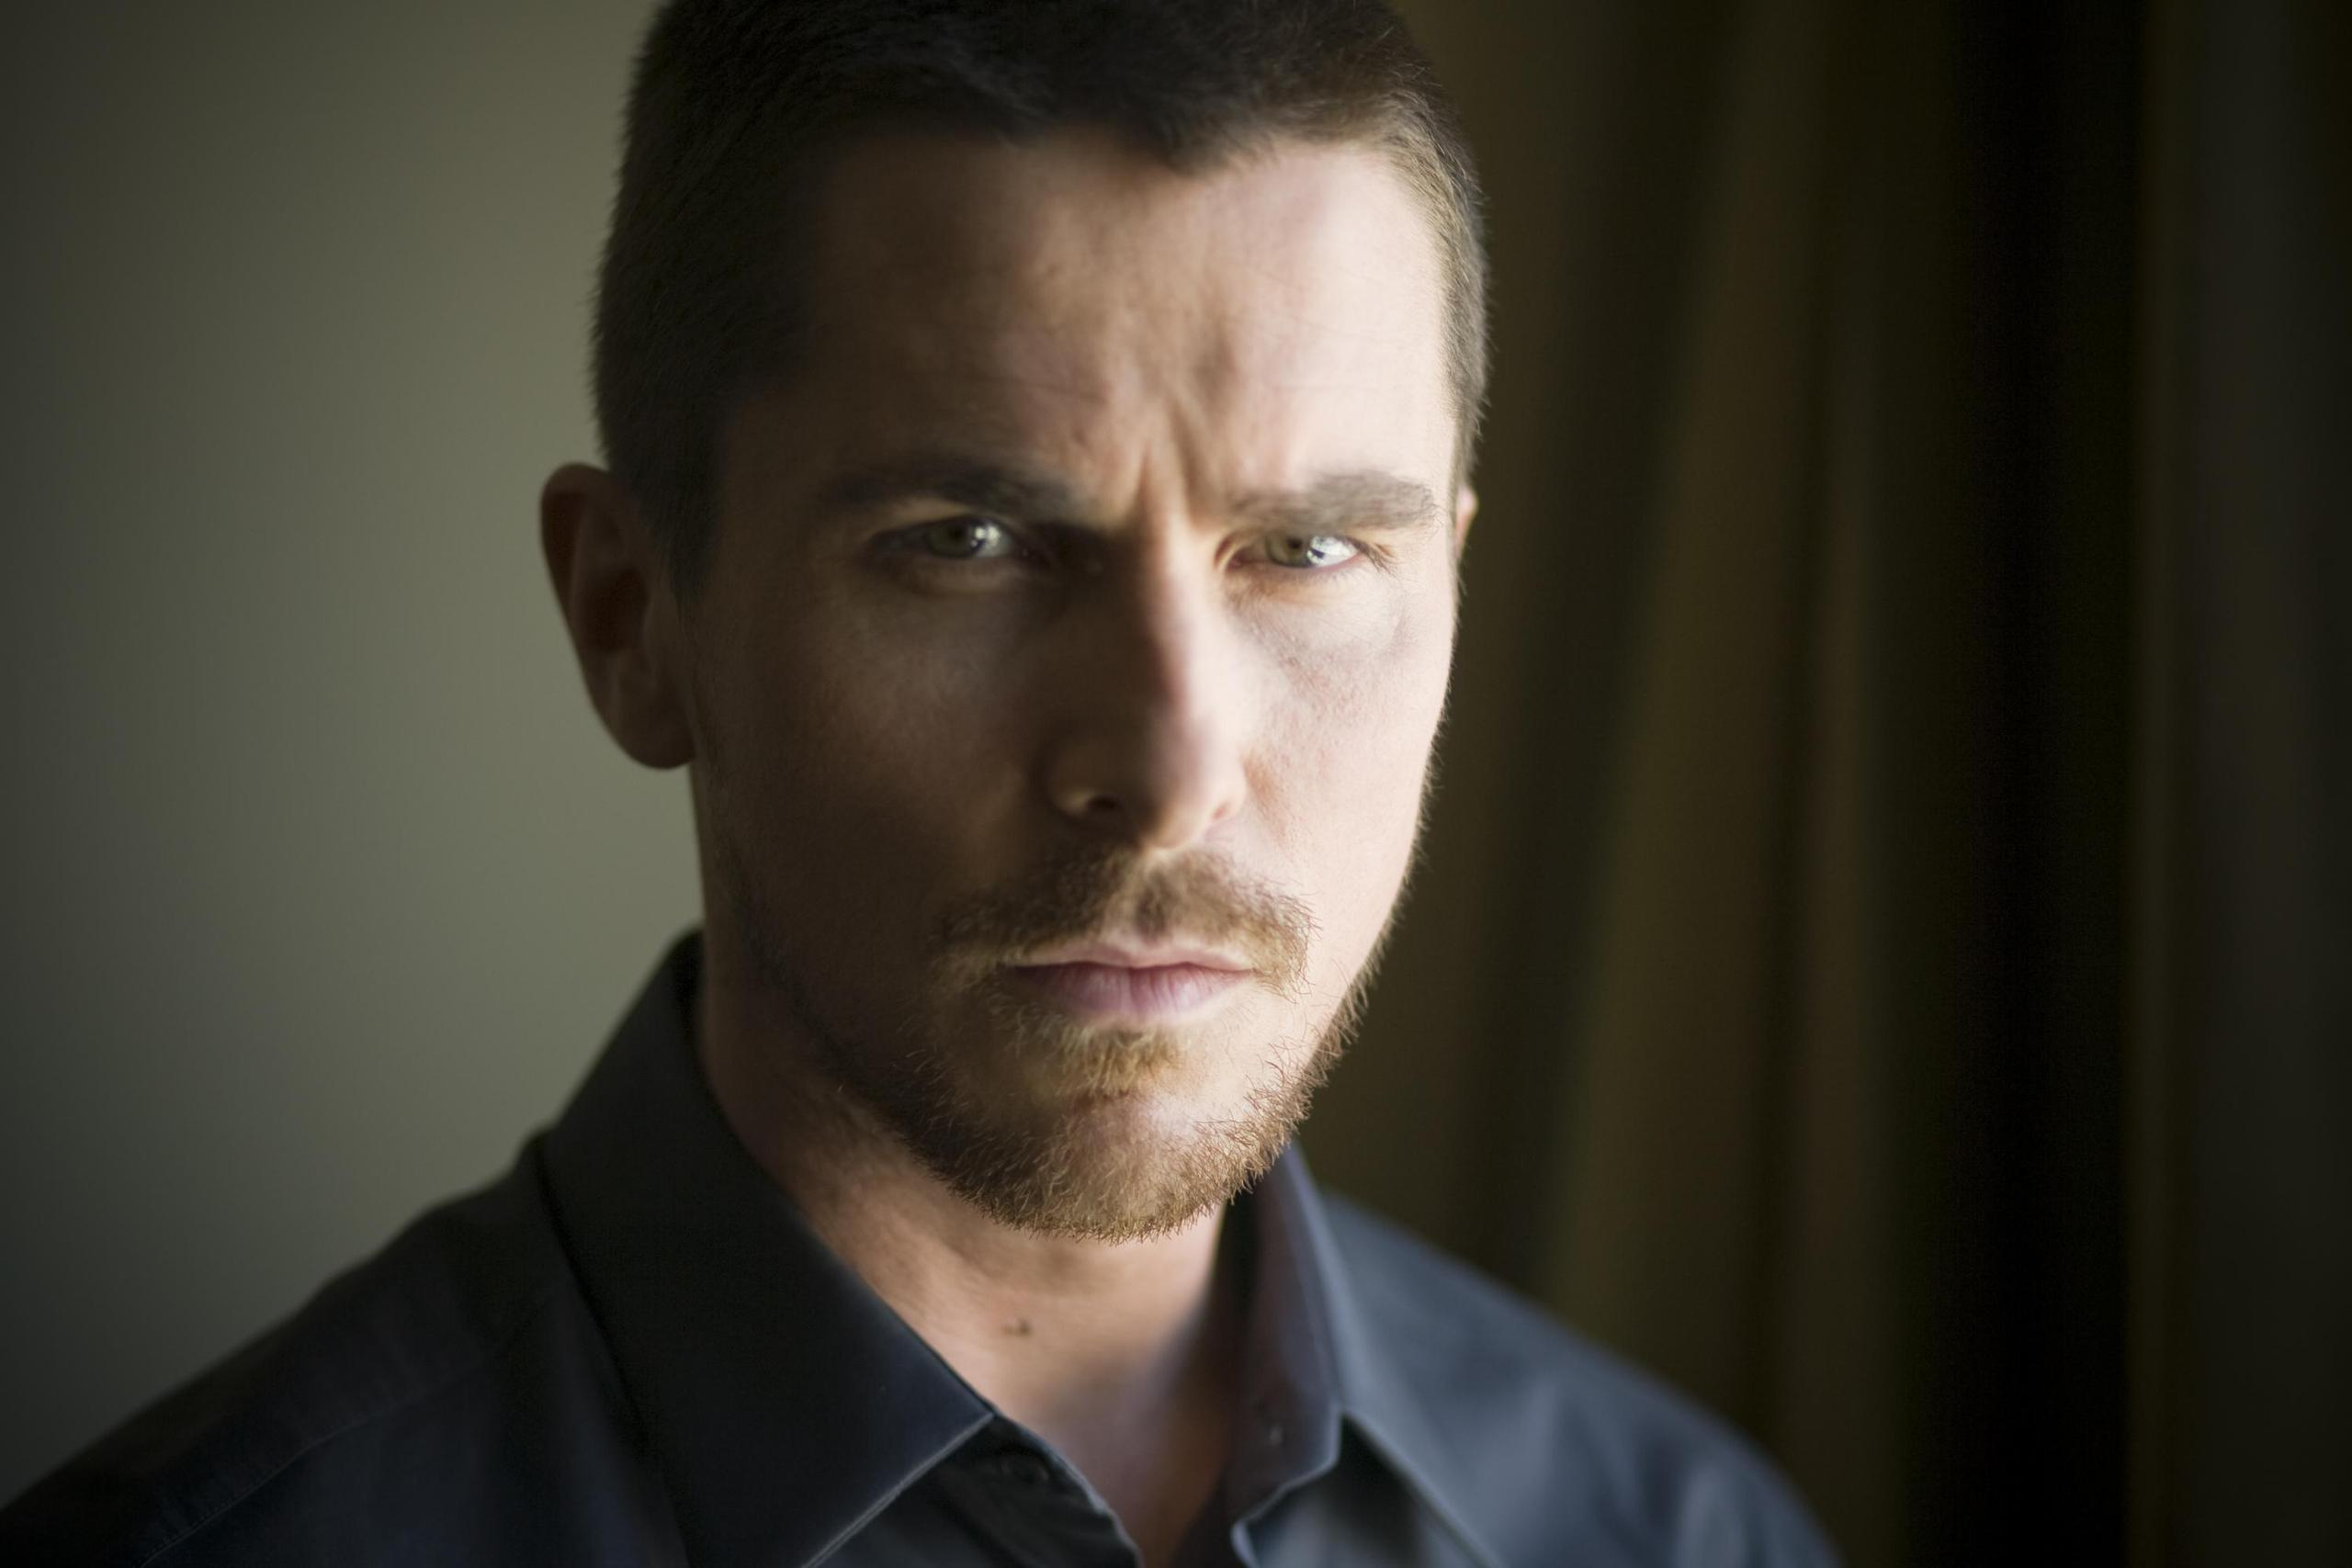 Christian - Christian Bale Photo (2161324) - Fanpop Christian Bale